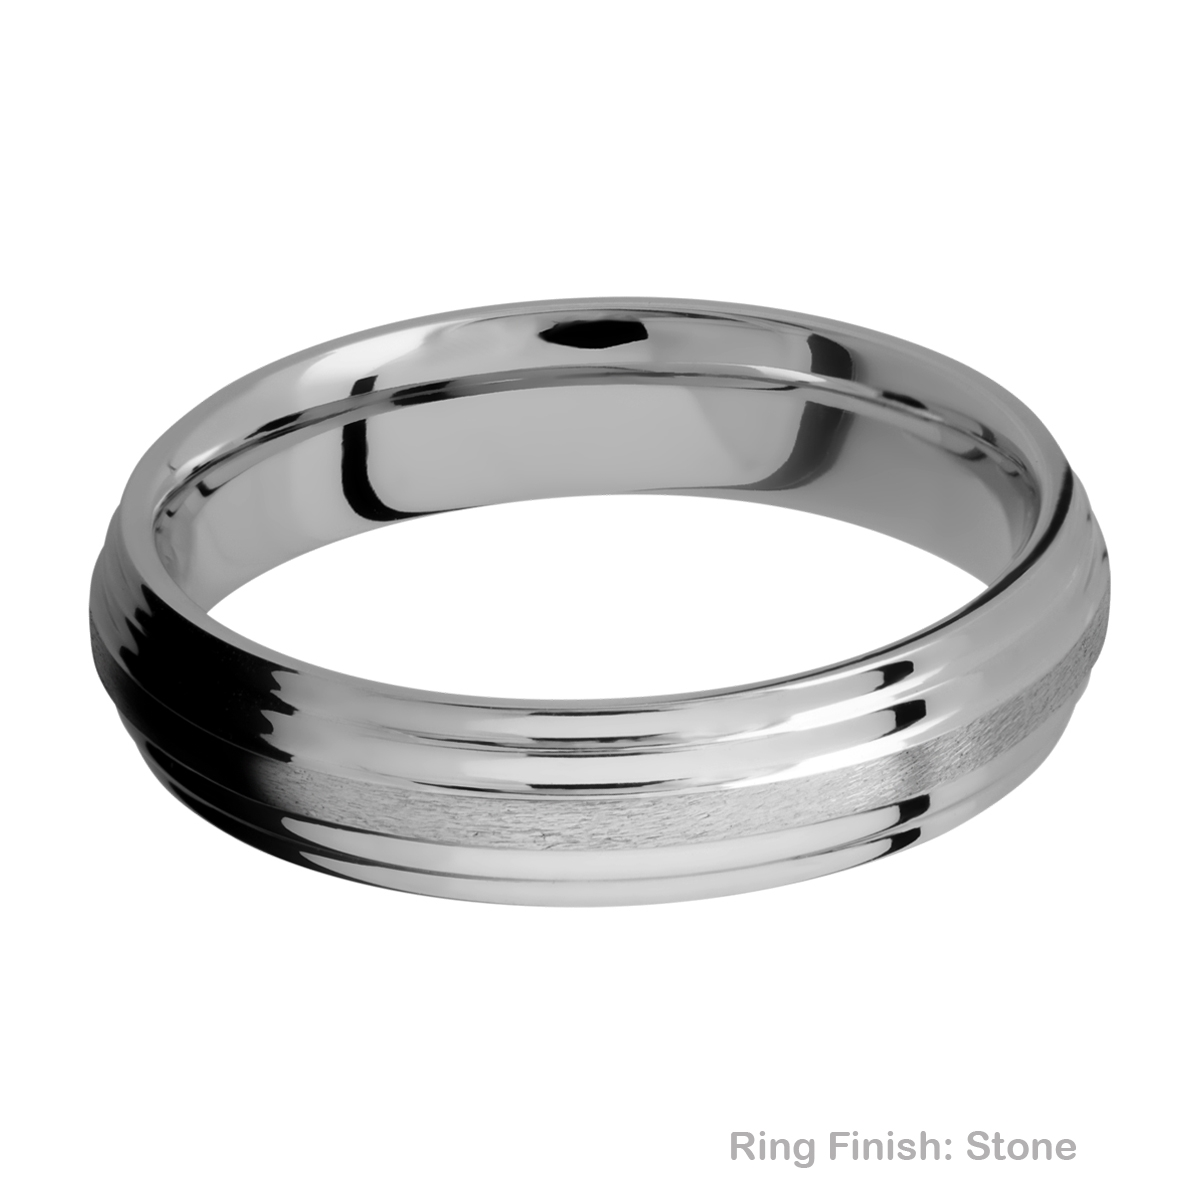 Lashbrook 5F2S Titanium Wedding Ring or Band Alternative View 7